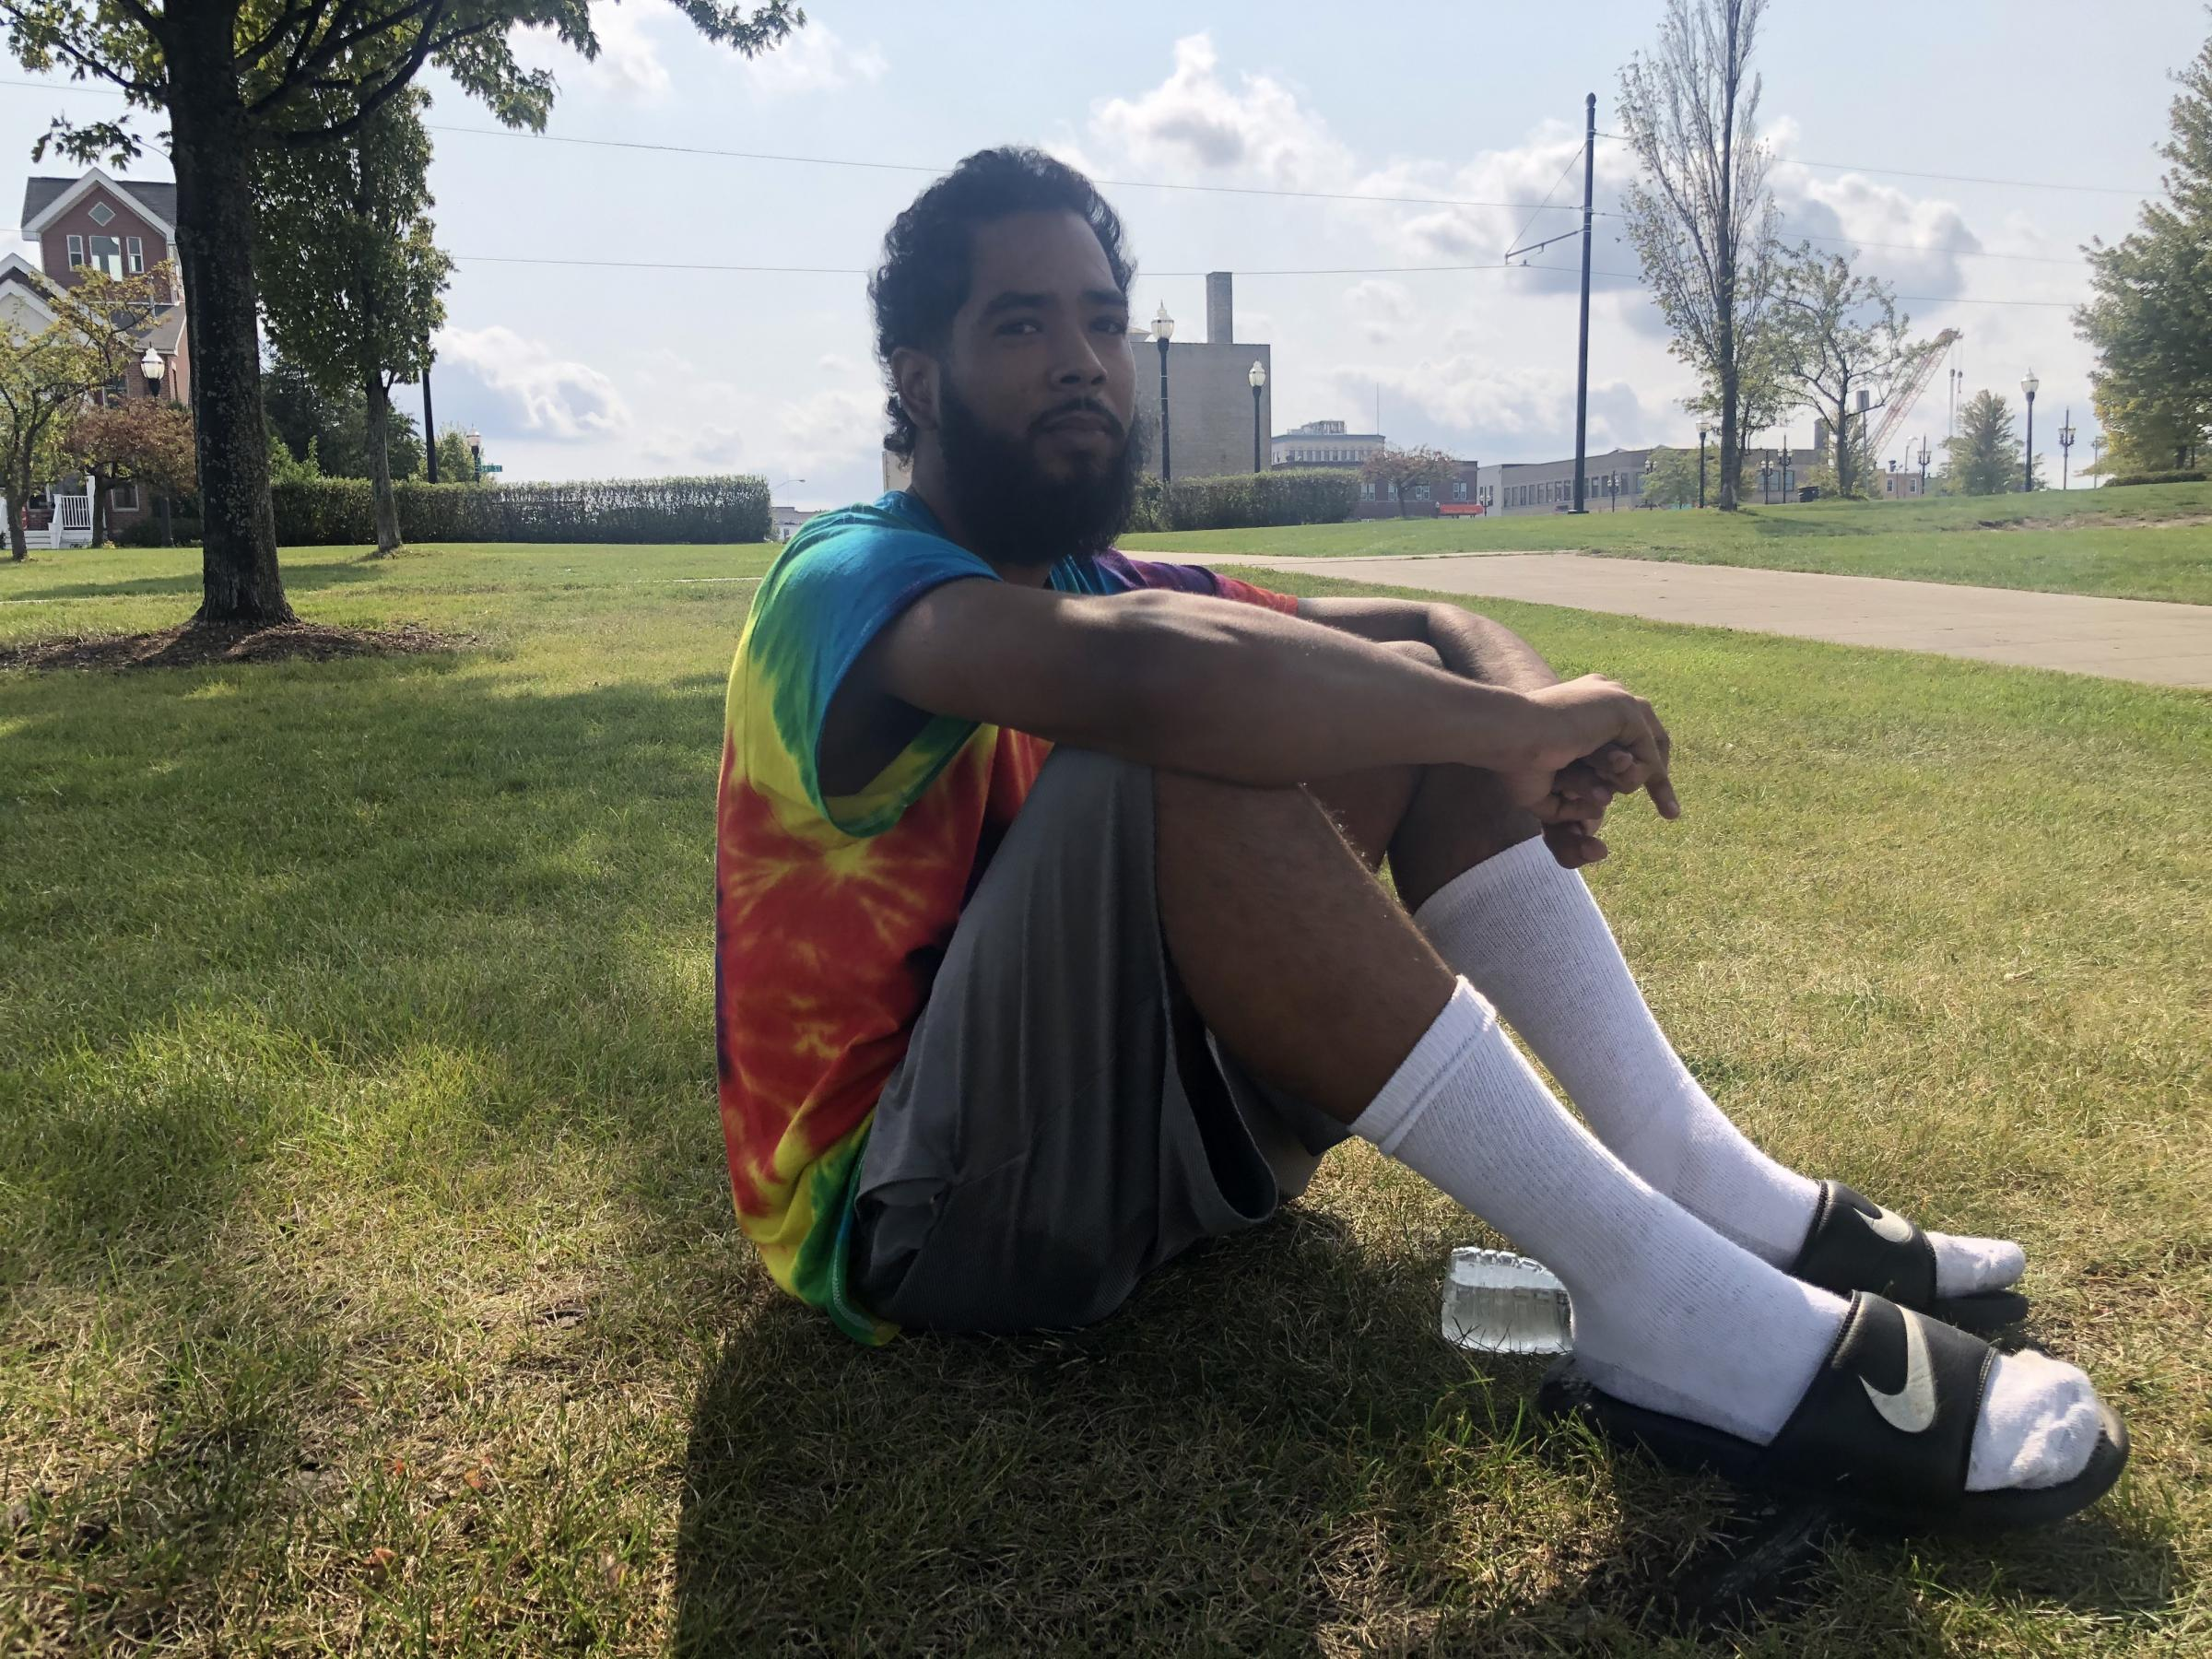 Young, bearded man in tie-dye shirt sits on grass